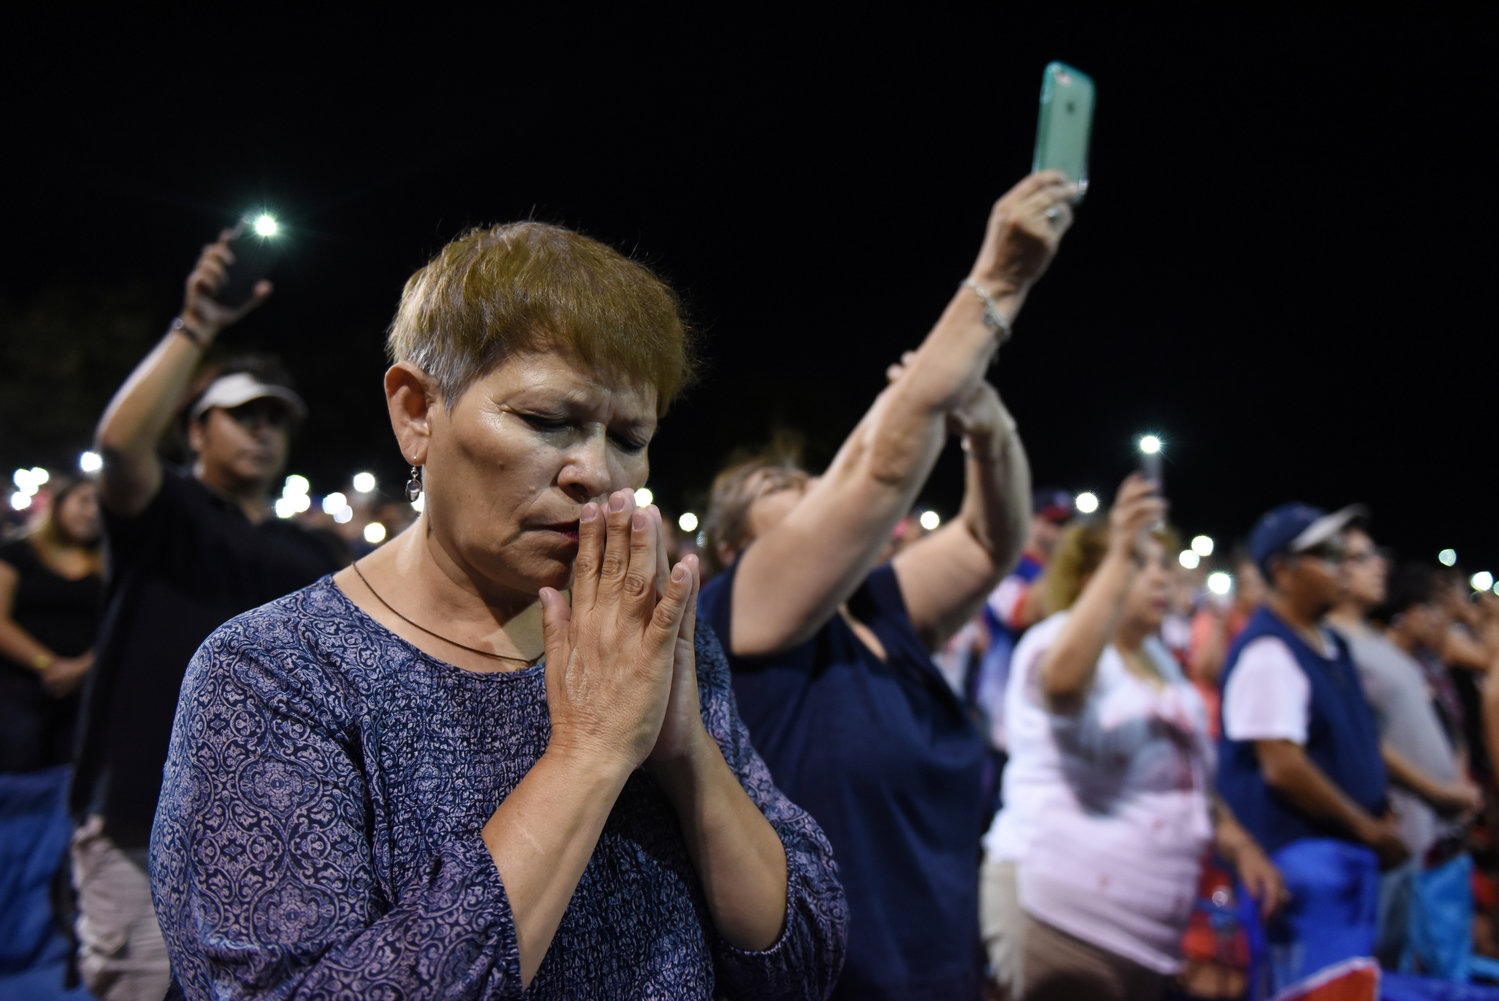 A woman prays during an Aug. 4 vigil, a day after a mass shooting at a Walmart store in El Paso, Texas.